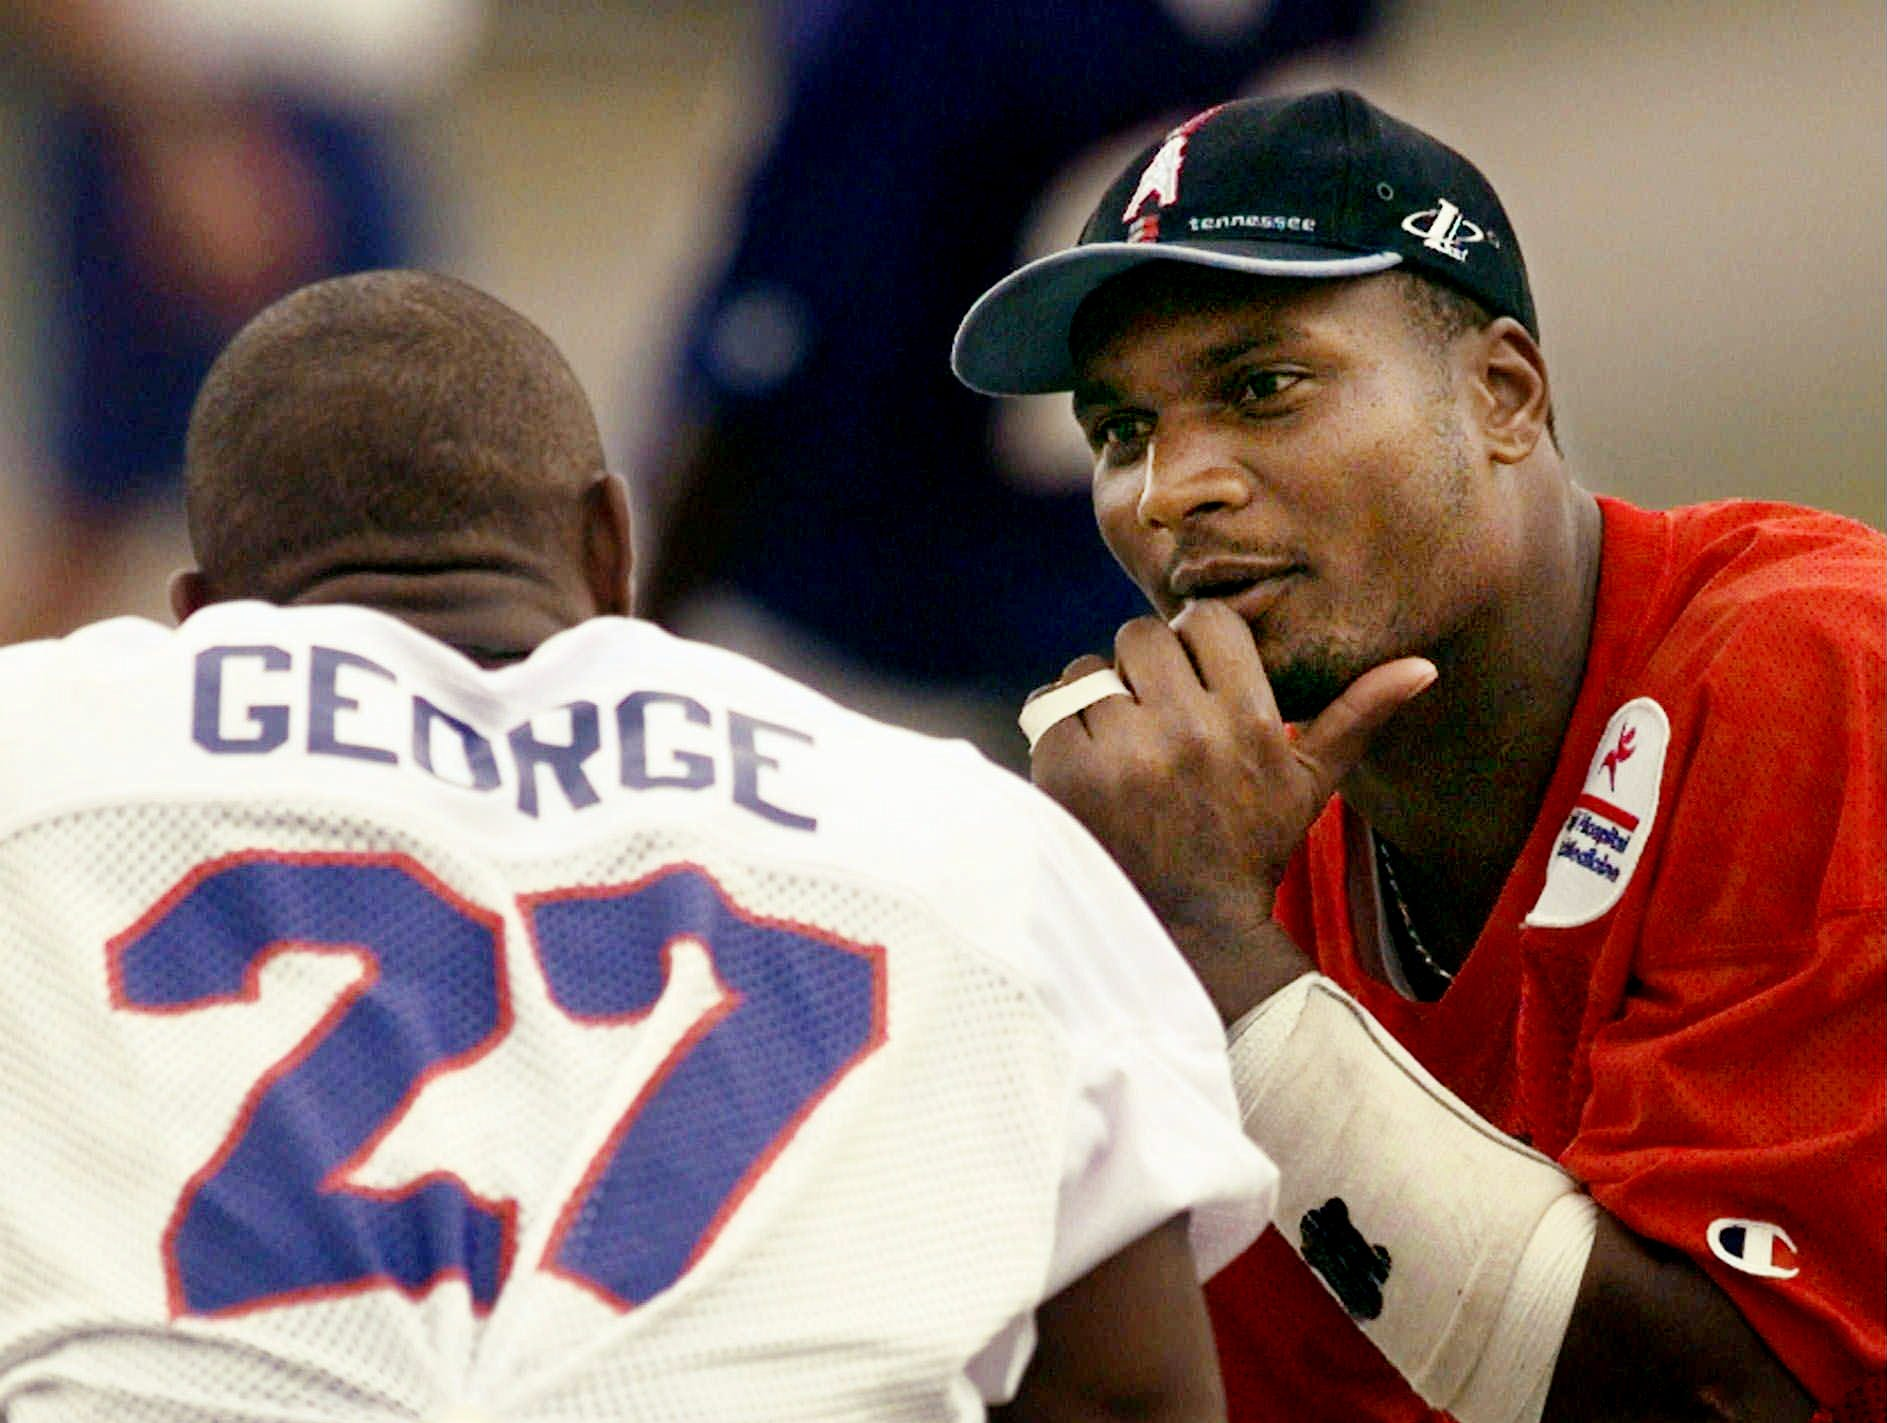 Tennessee Oilers quarterback Steve McNair, right, talks with running back Eddie George during practice Aug. 12, 1998 in Nashville. The Oilers hope their offense, led by McNair, runs as smoothly against the Washington Redskins as it did in its first exhibition game against the Atlanta Falcons.